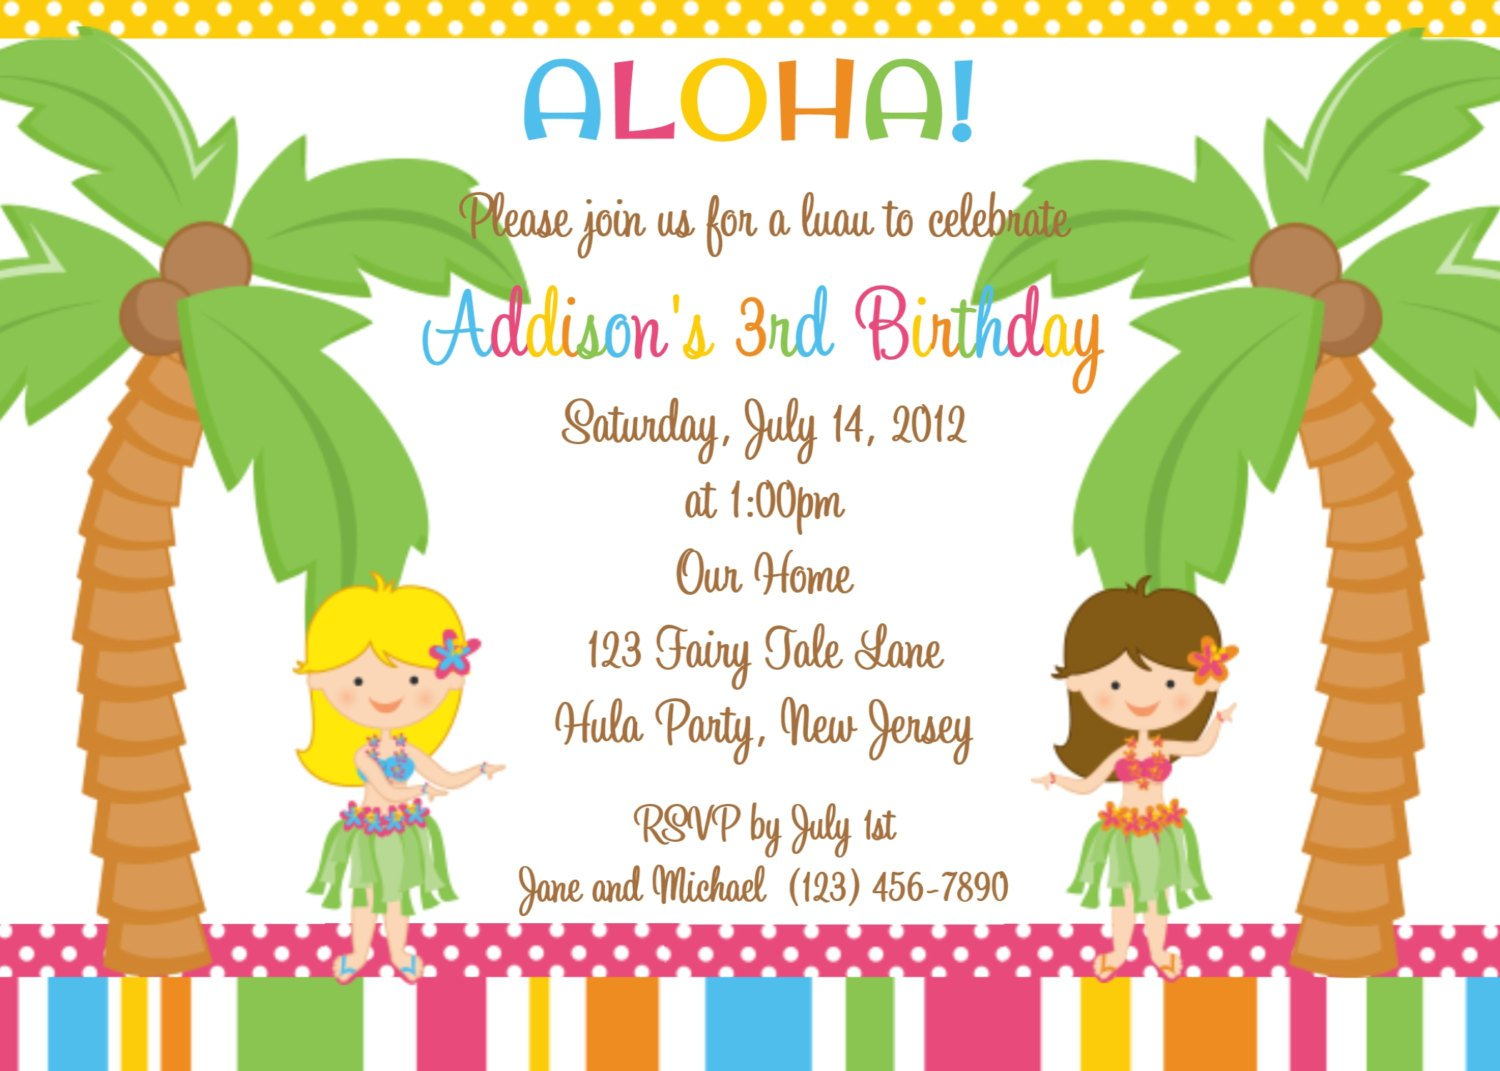 Luau party invitations templates free etamemibawa luau party invitations templates free stopboris